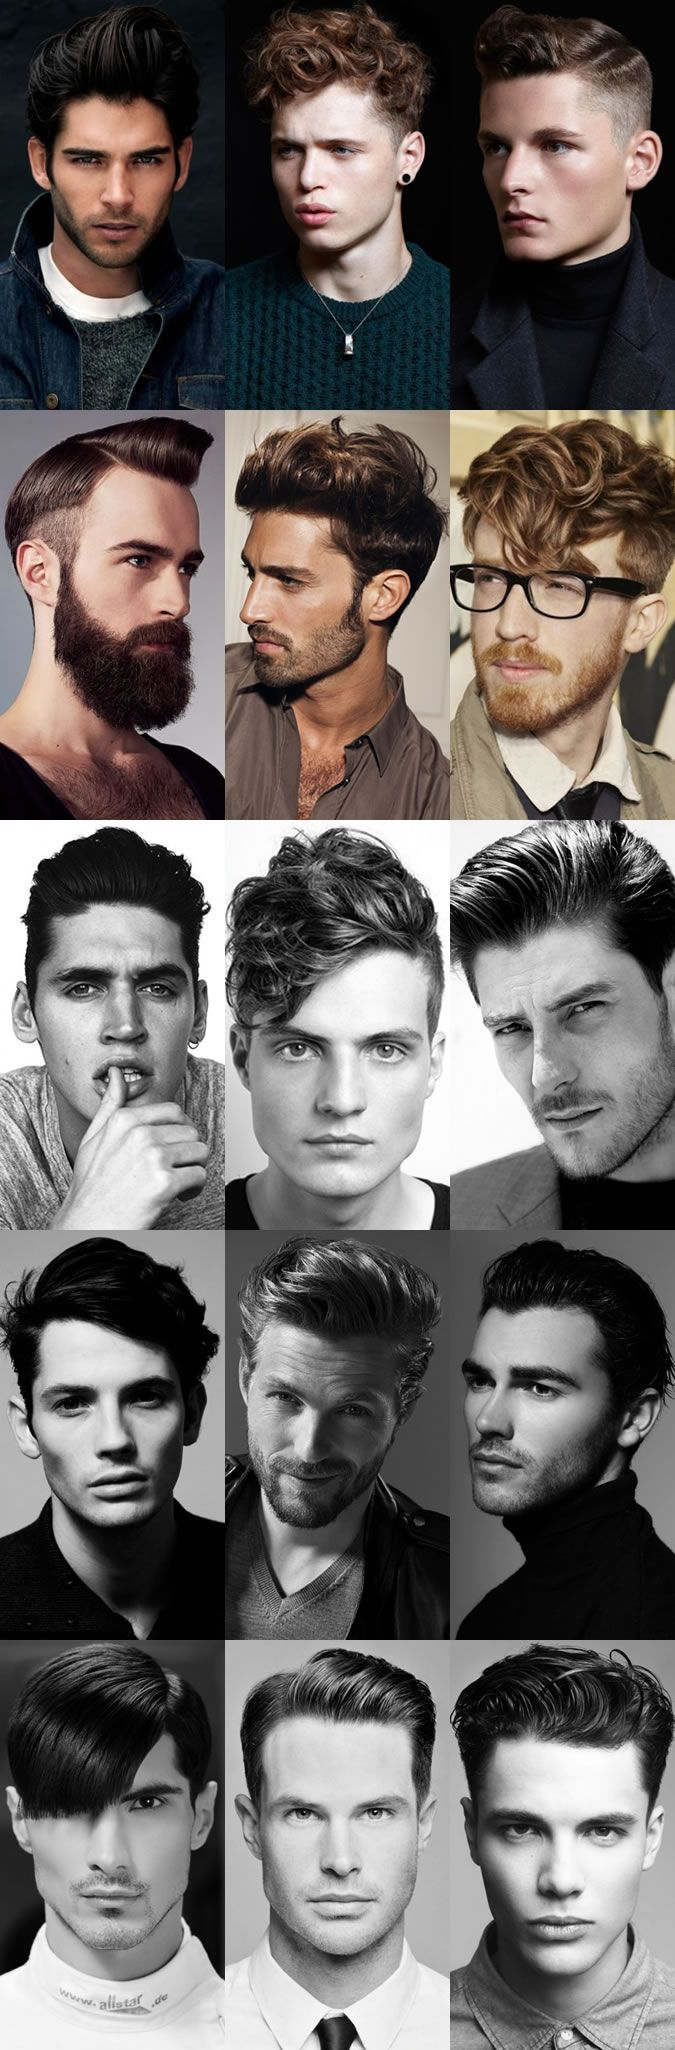 Boy hairstyle new cutting menus gel hairstyles lookbook  hair cutting  pinterest  gel